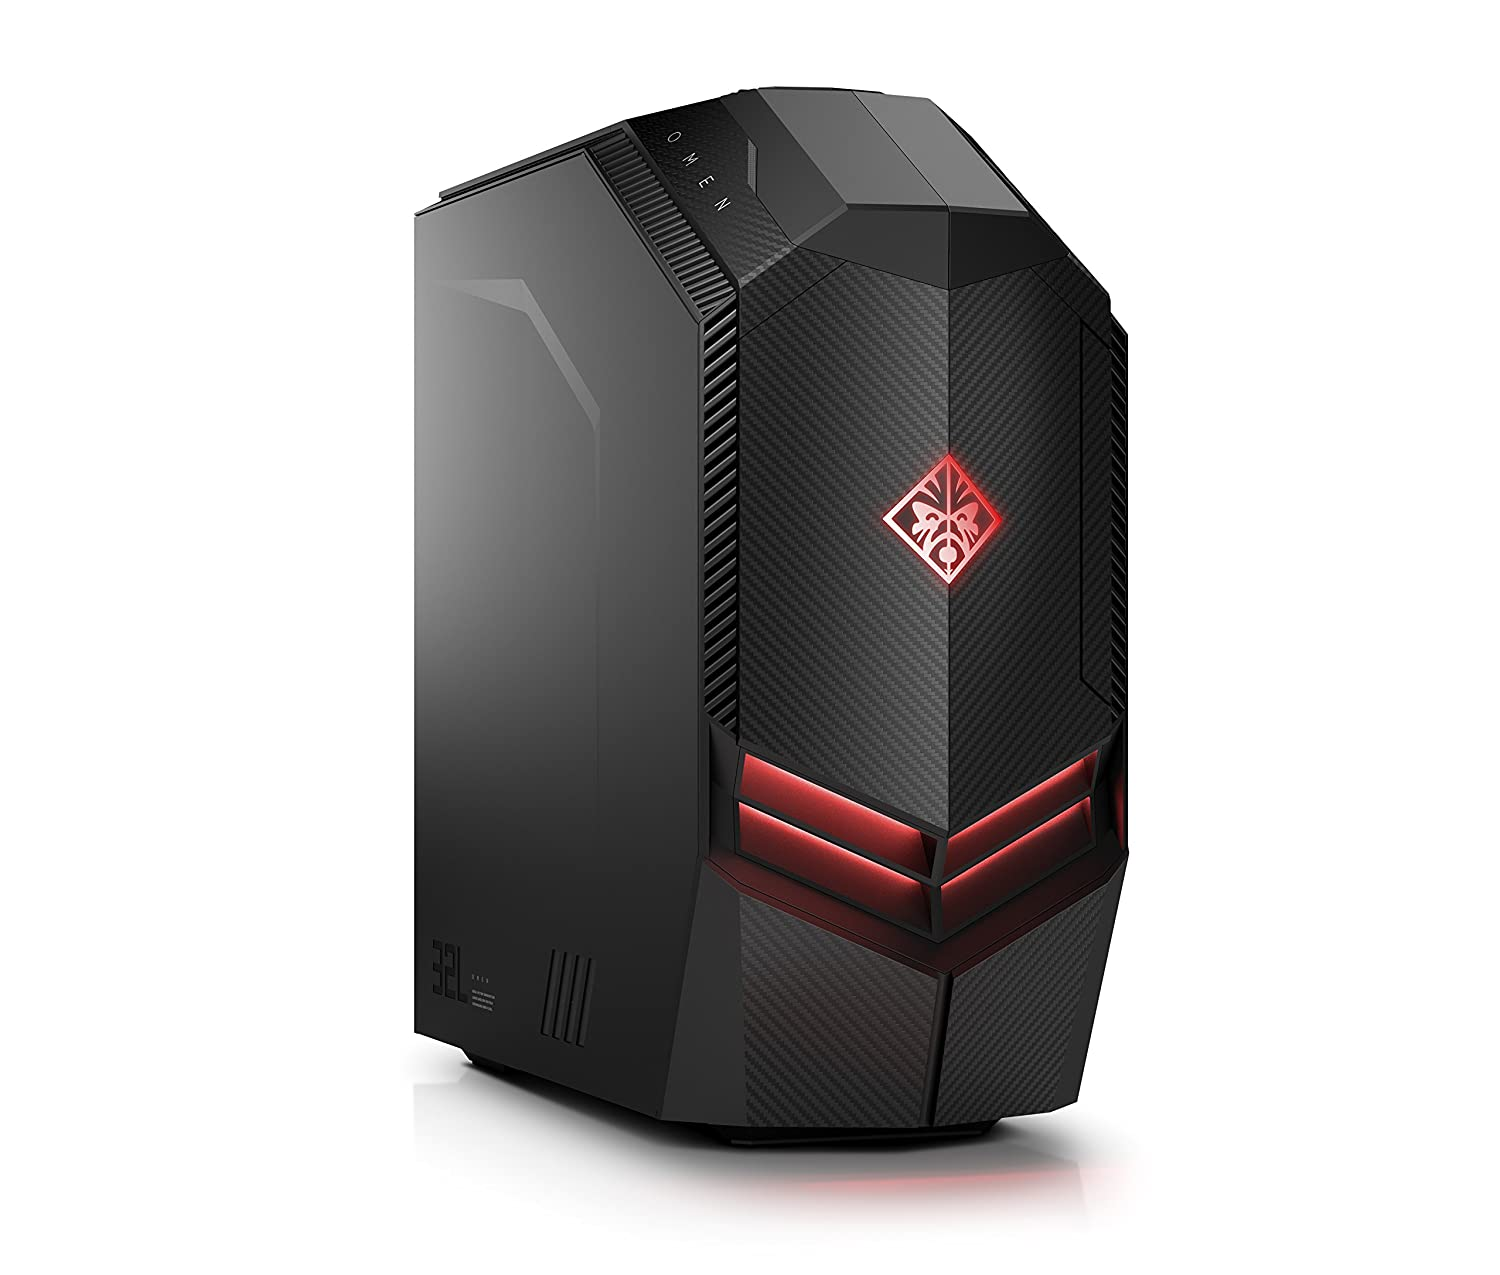 HP OMEN by Desktop PC - 880-199ng Intel Core i7-8700K 16GB RAM, 256GB M.2 NVMe SSD + 1TB HDD, GeForce RTX 2080, Win10